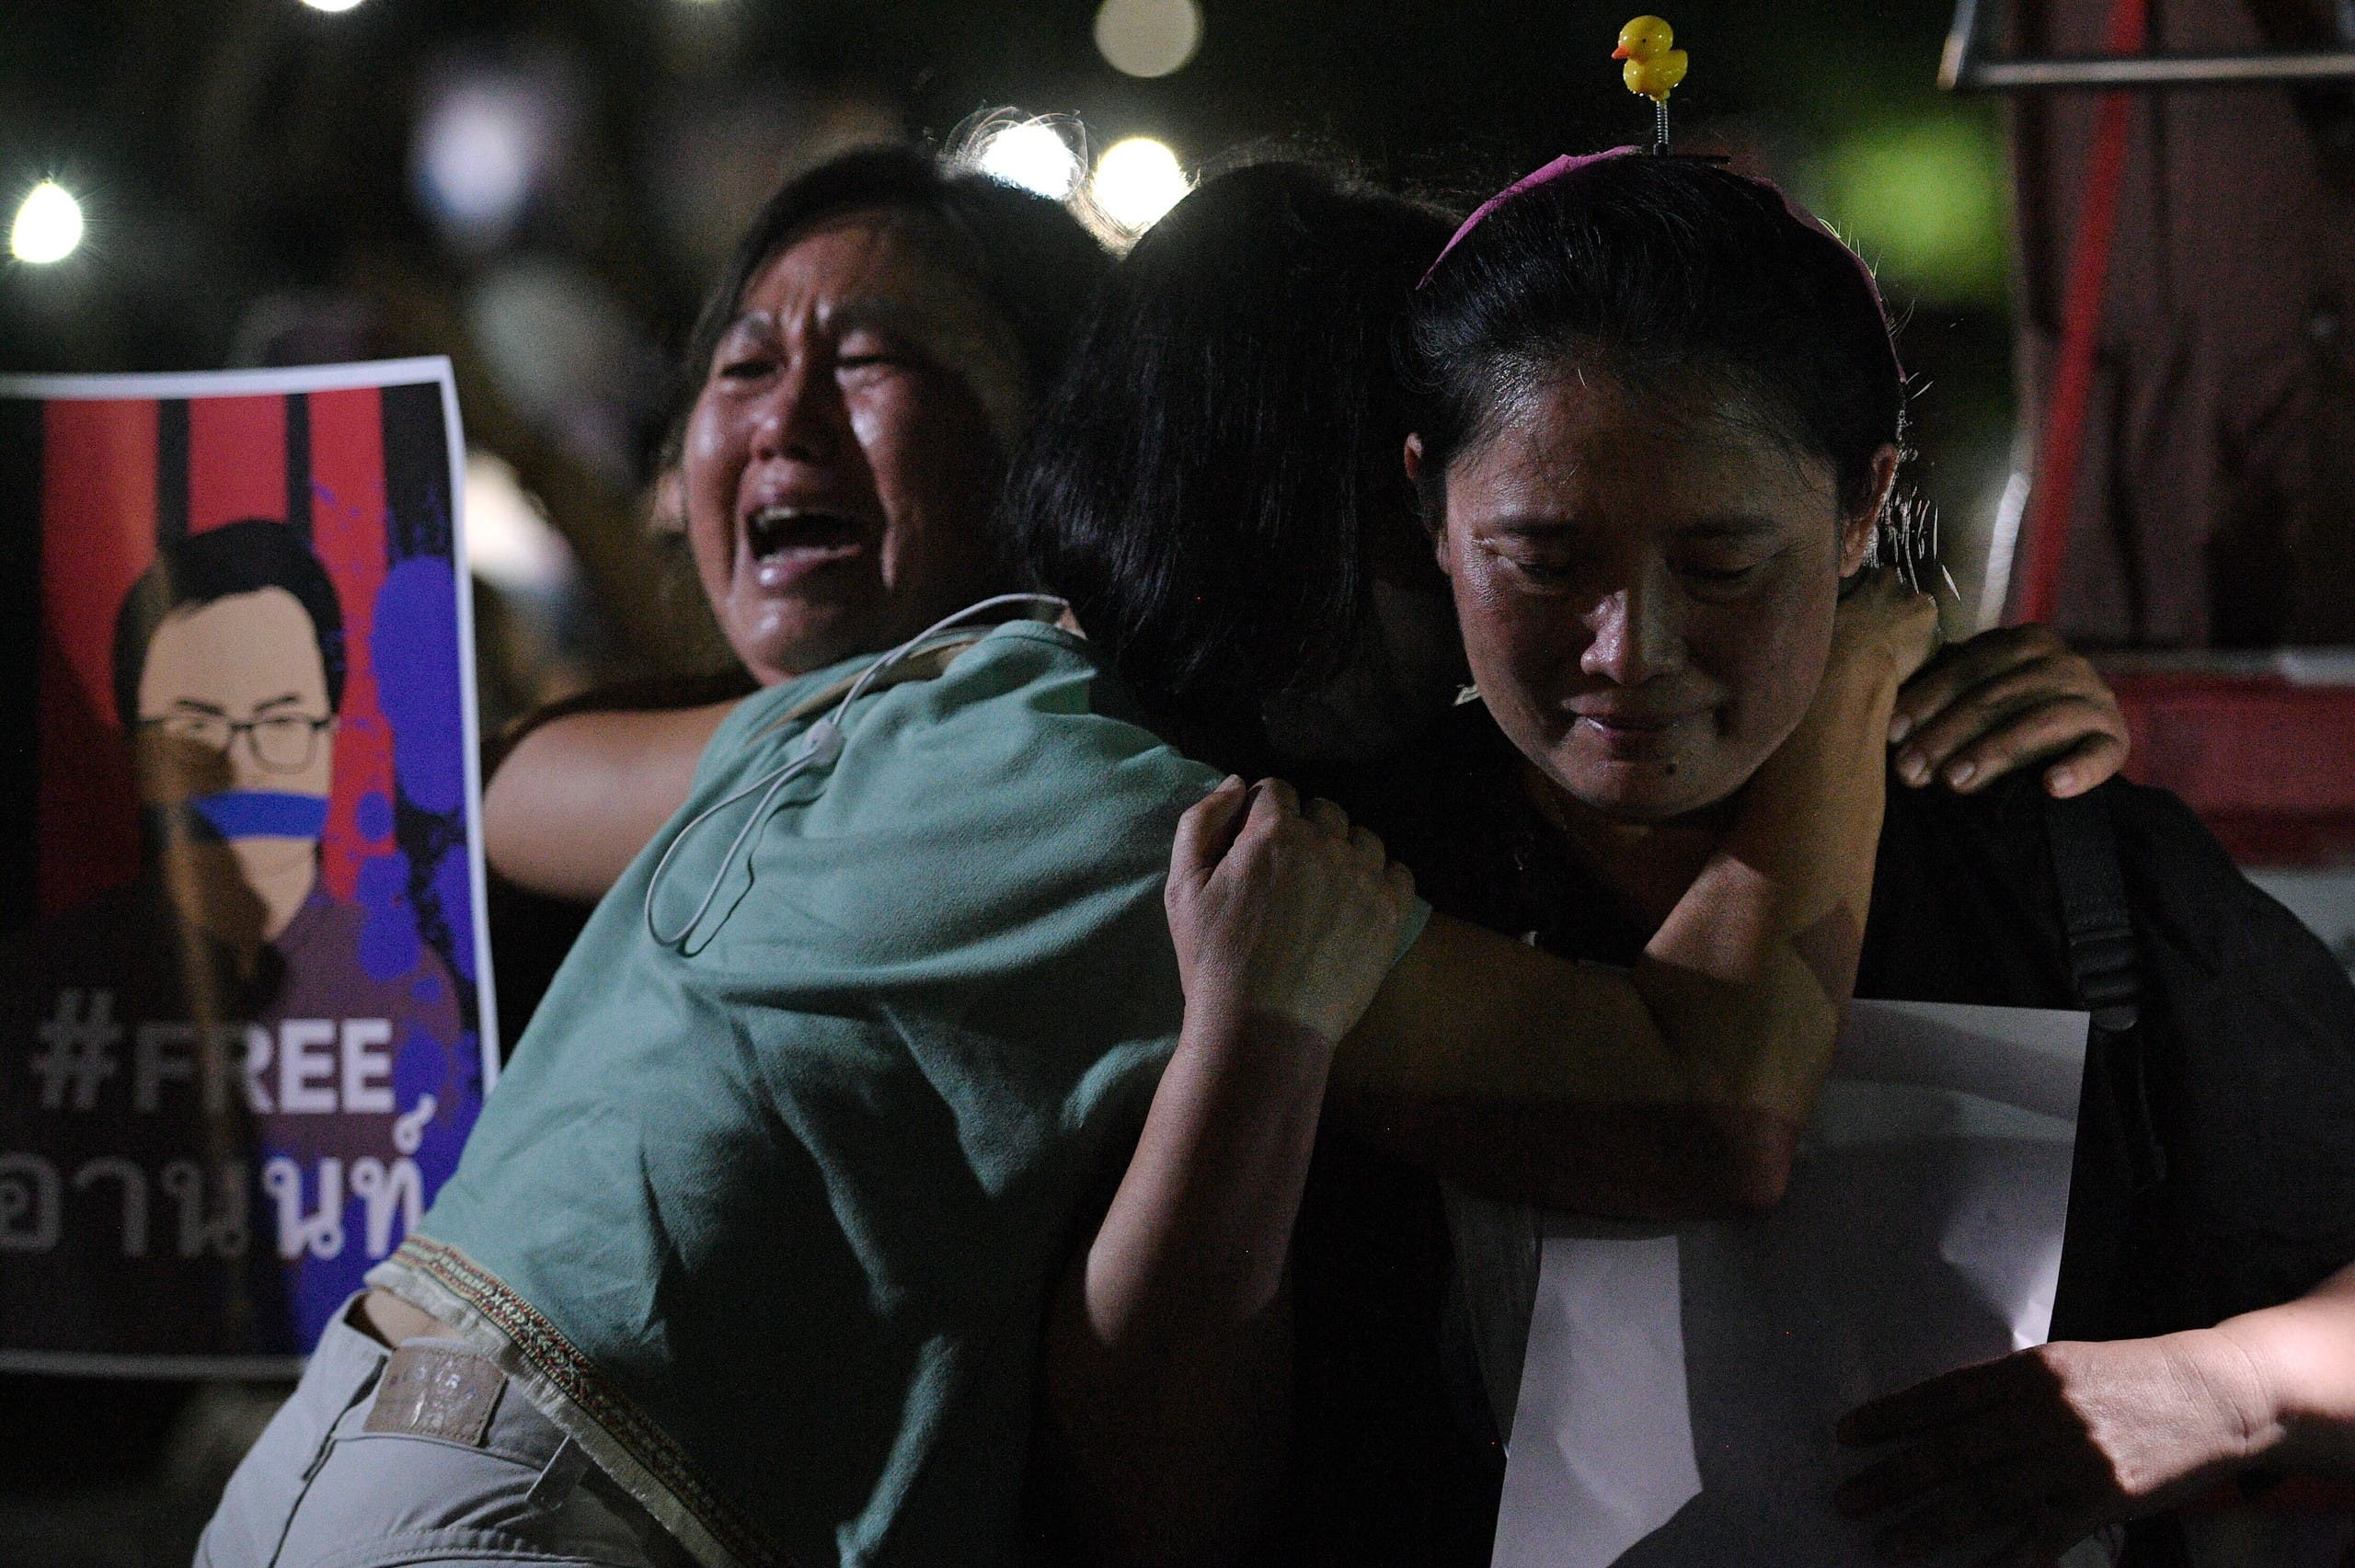 Anti-government demonstrators embrace each other as they gather inside Kasetsart University, calling authorities to release four protestors including Parit Penguin Chiwarak and Anon Numpa charged with lese majeste law in Bangkok, Thailand March 6, 2021. (Reuters)